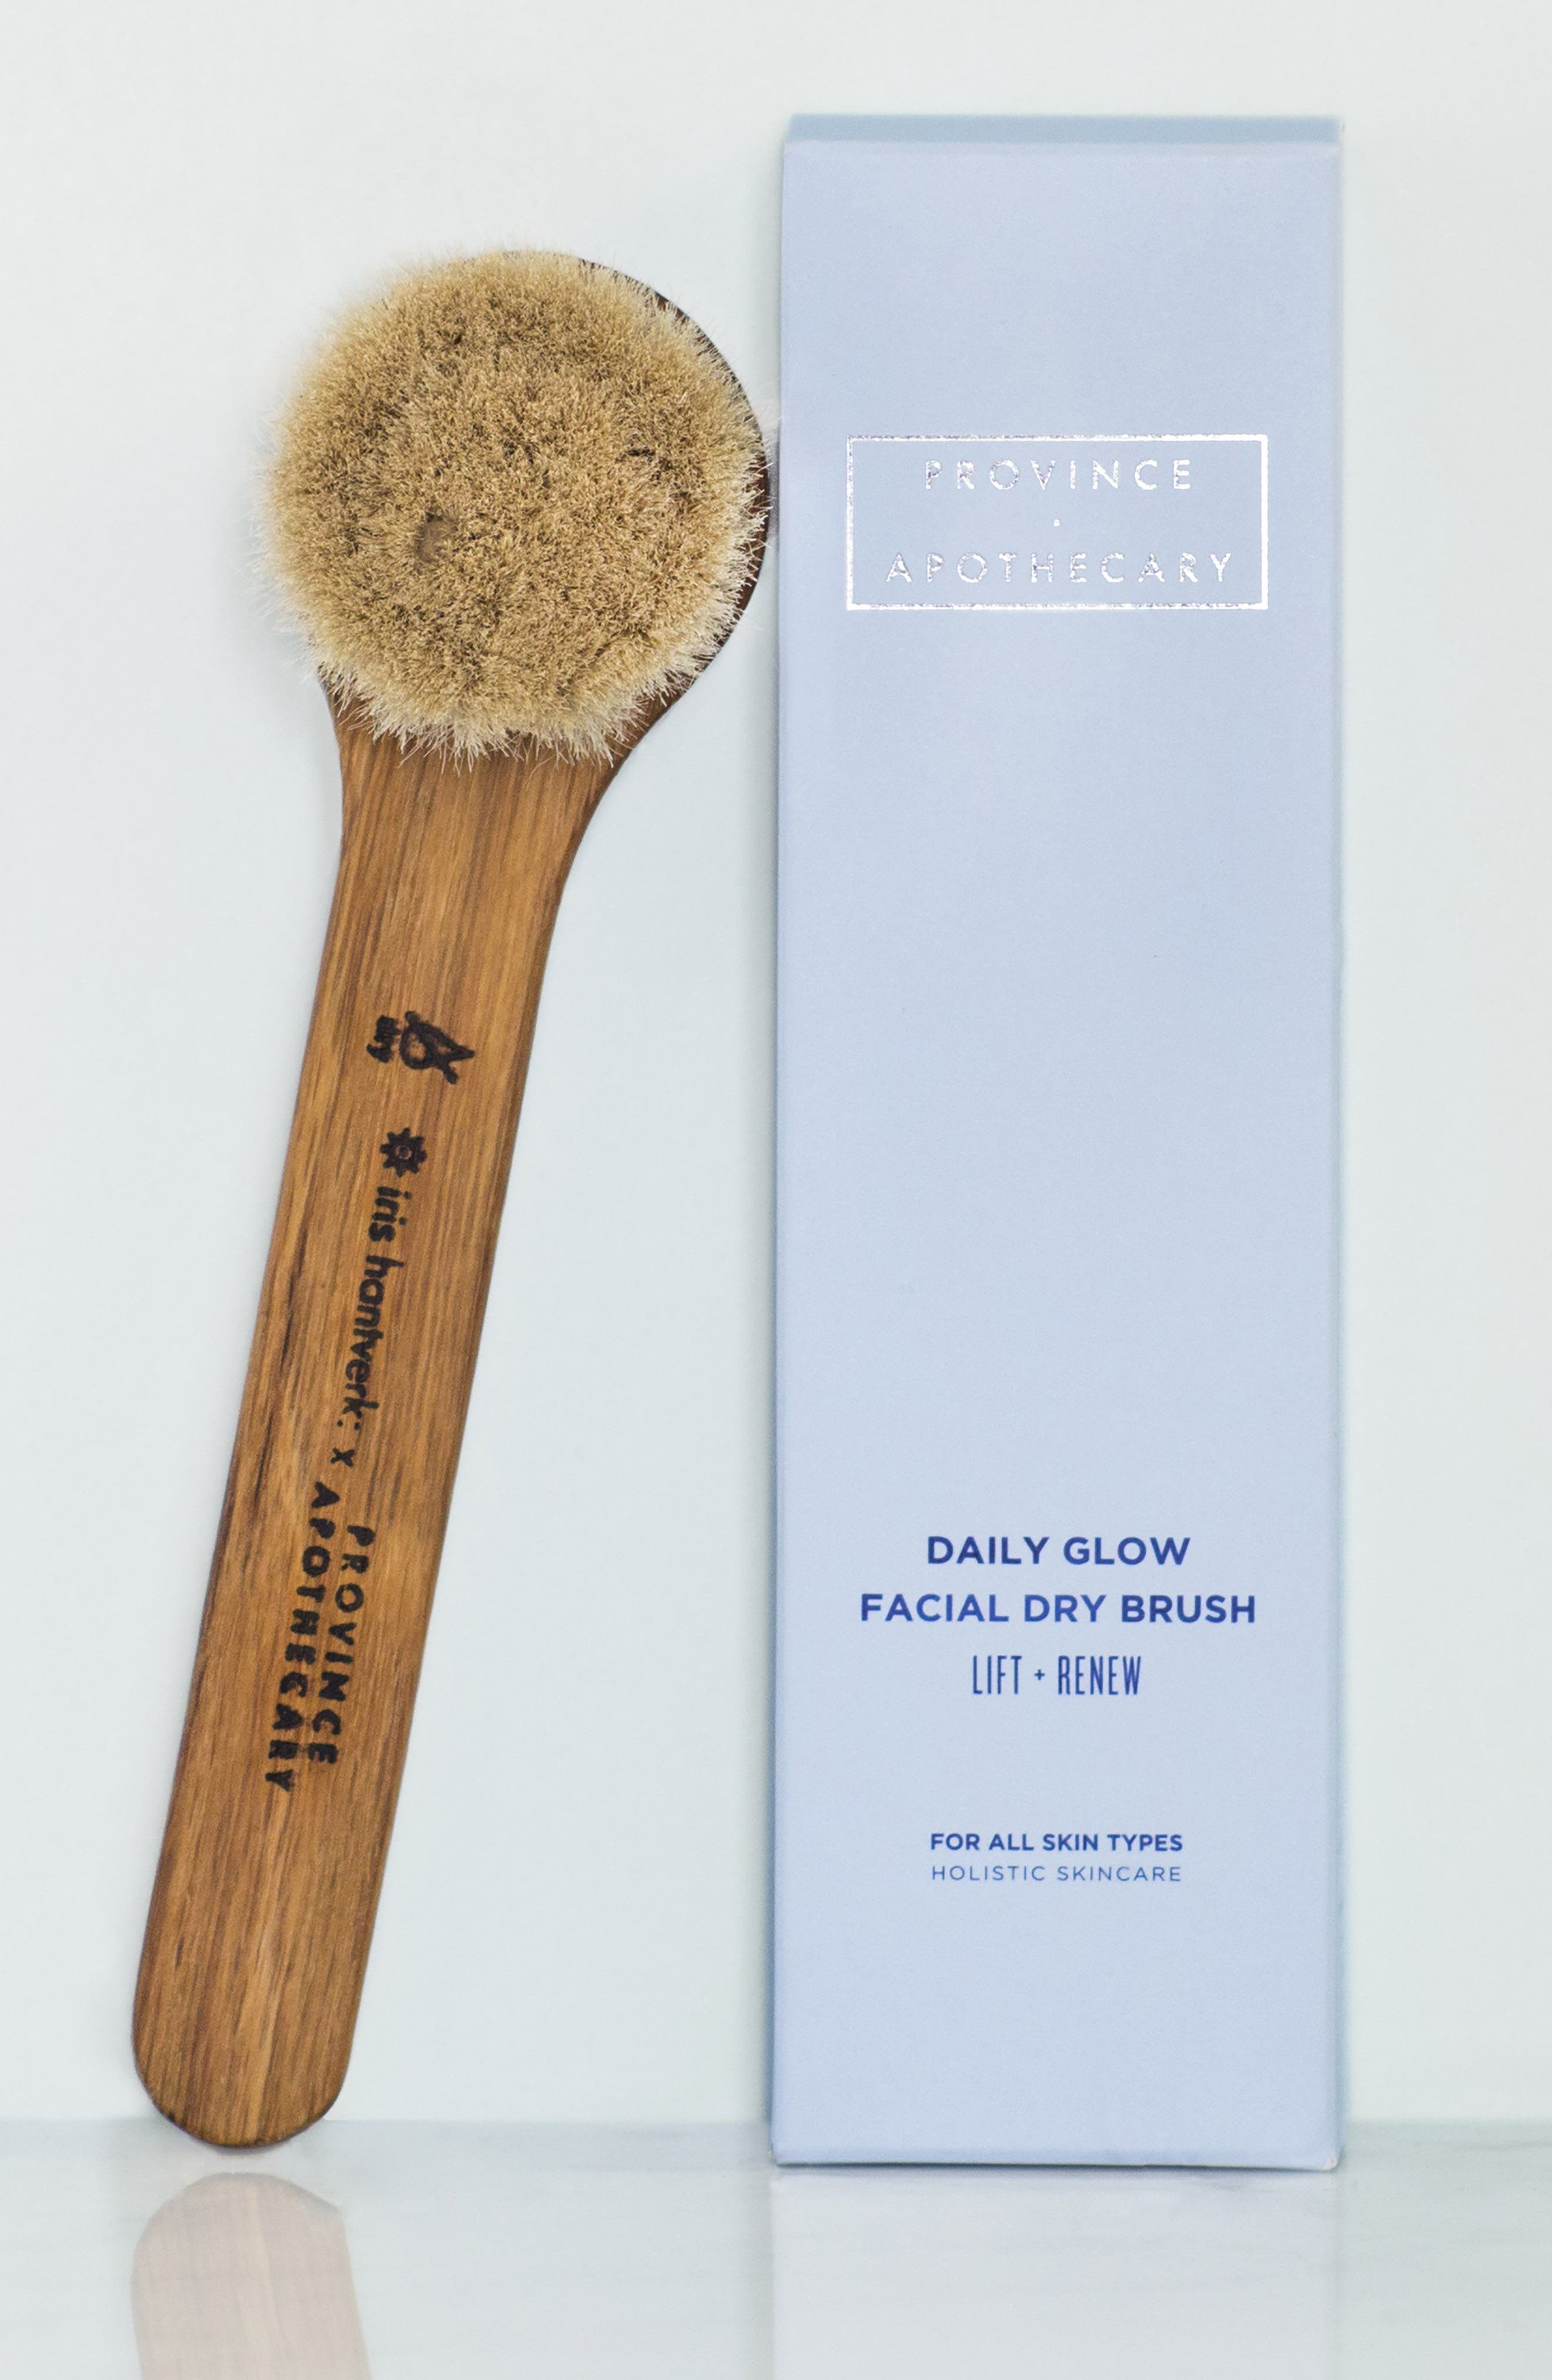 PROVINCE APOTHECARY, Daily Glow Facial Dry Brush, Alternate thumbnail 3, color, 200